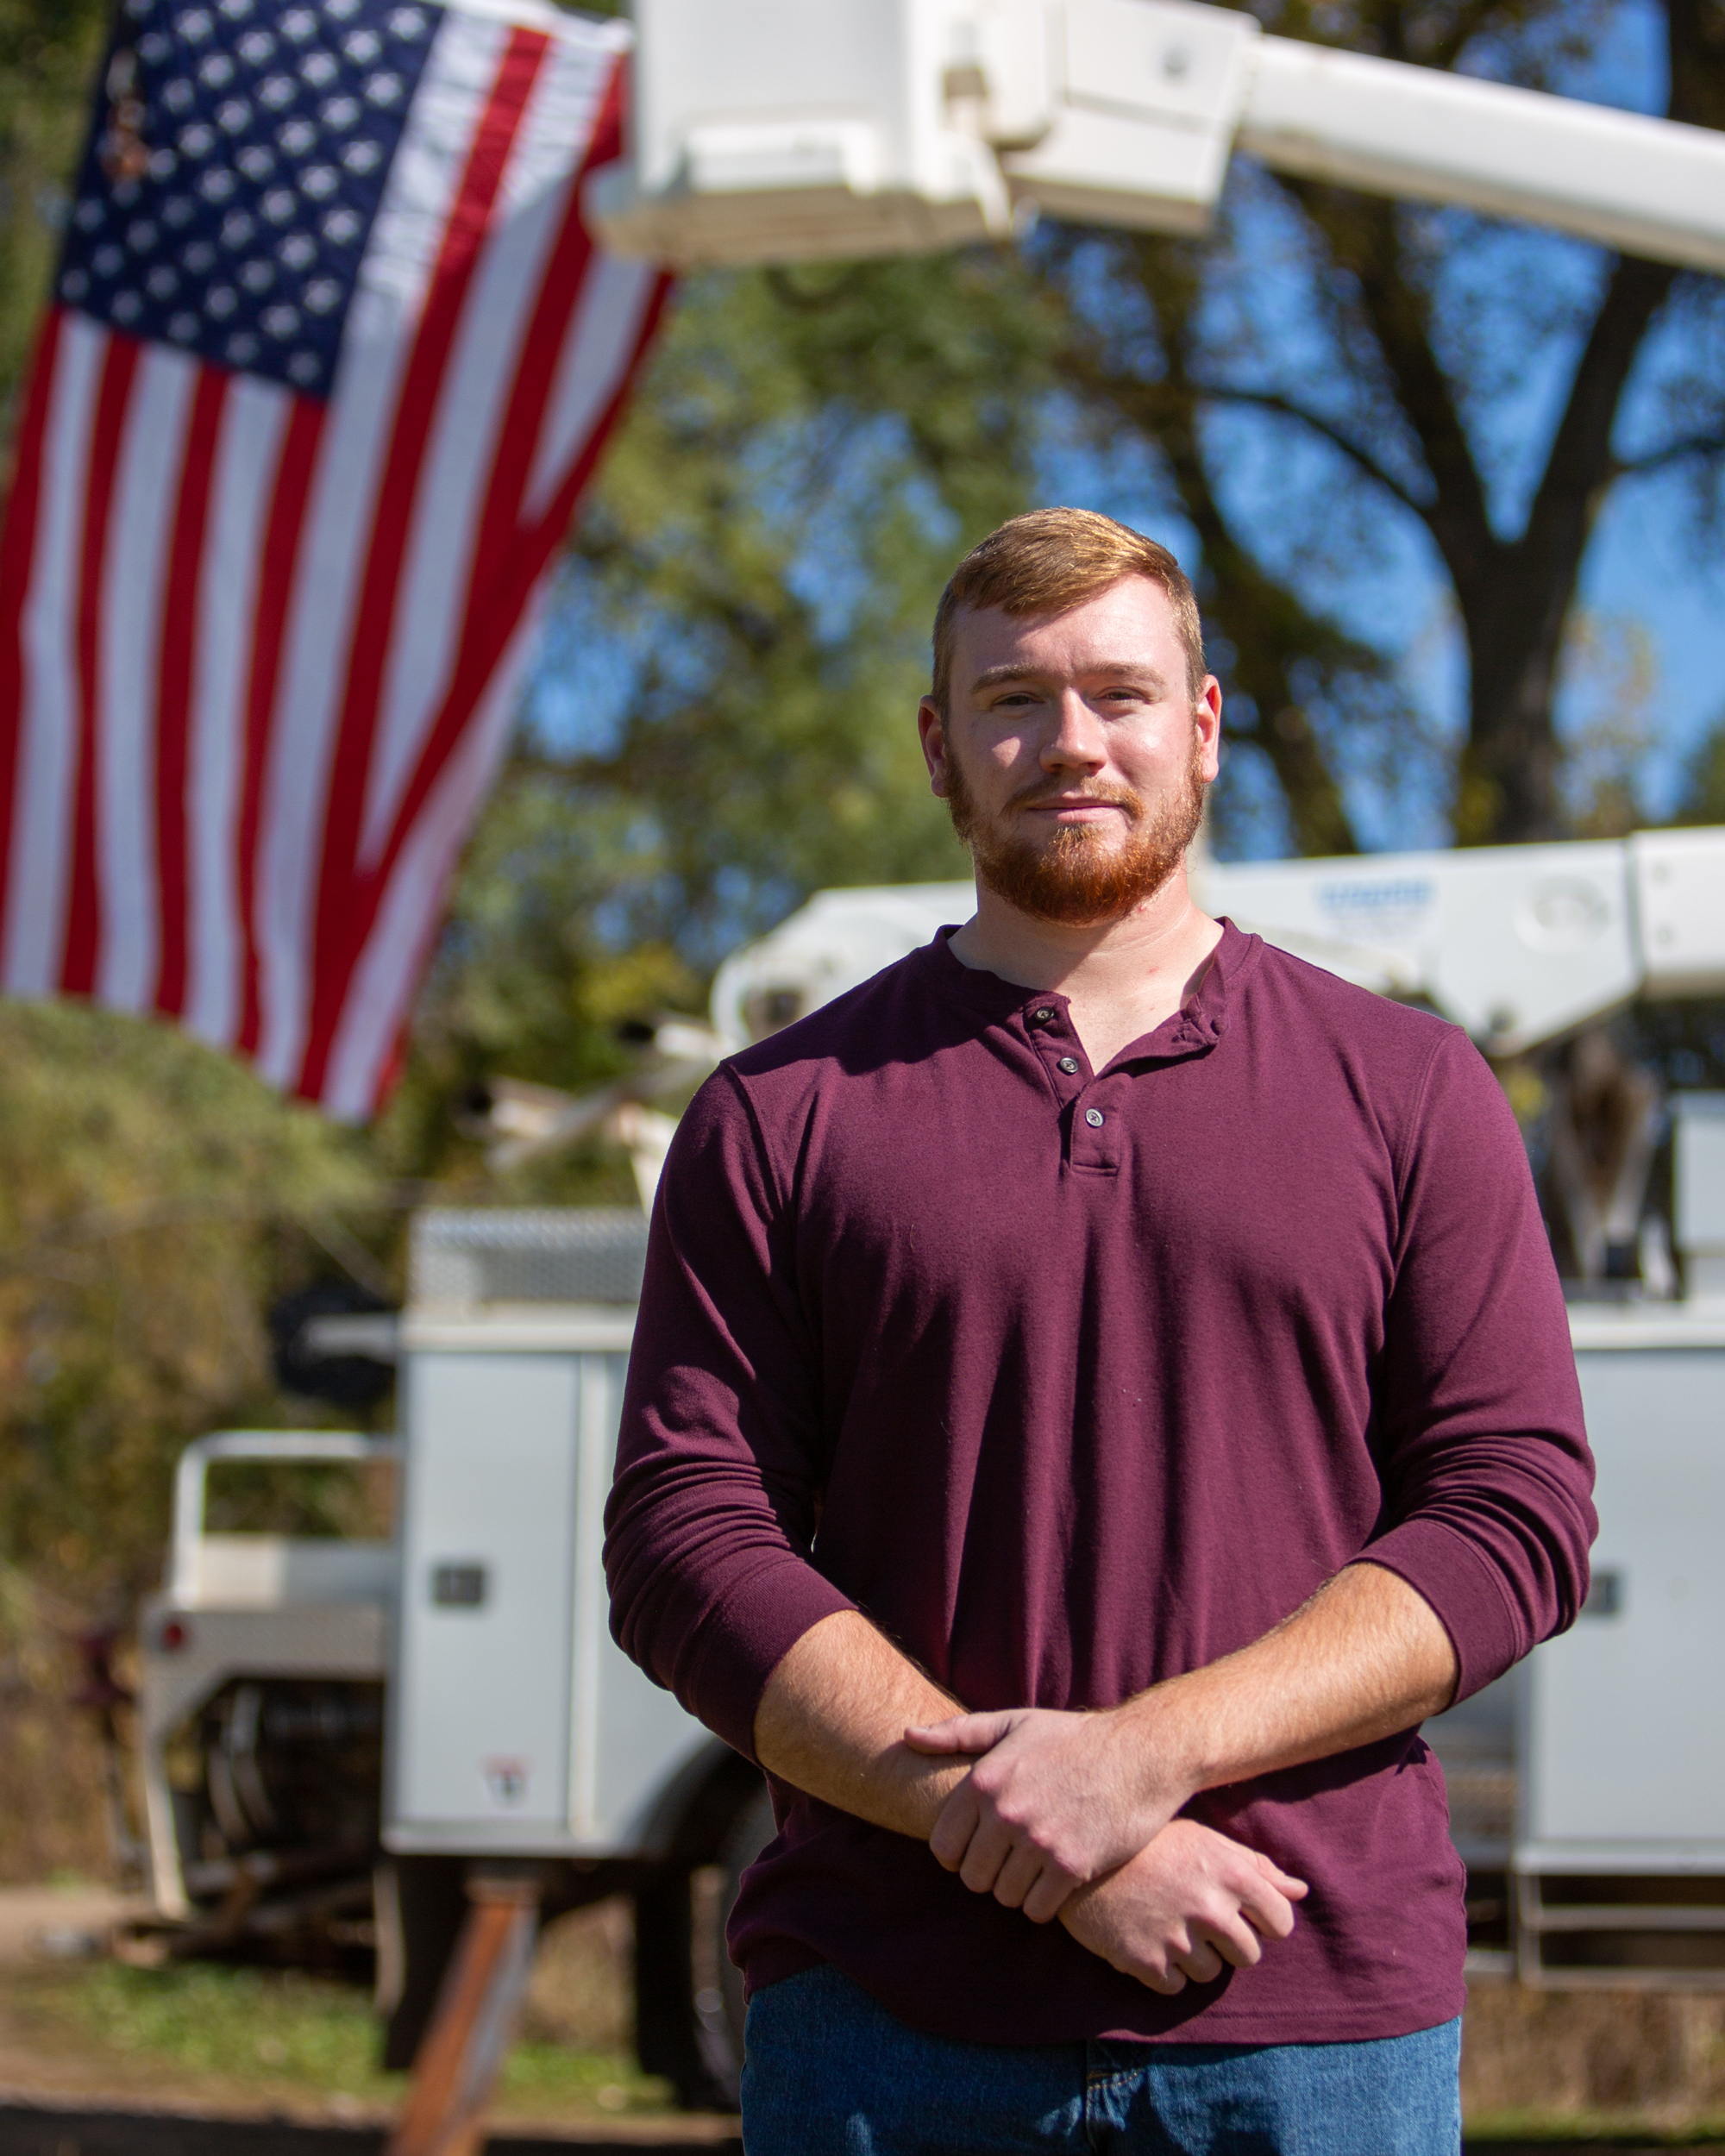 Garrett McAdams, U.S. Marine Corps veteran, Electrical Construction & Maintenance Technology